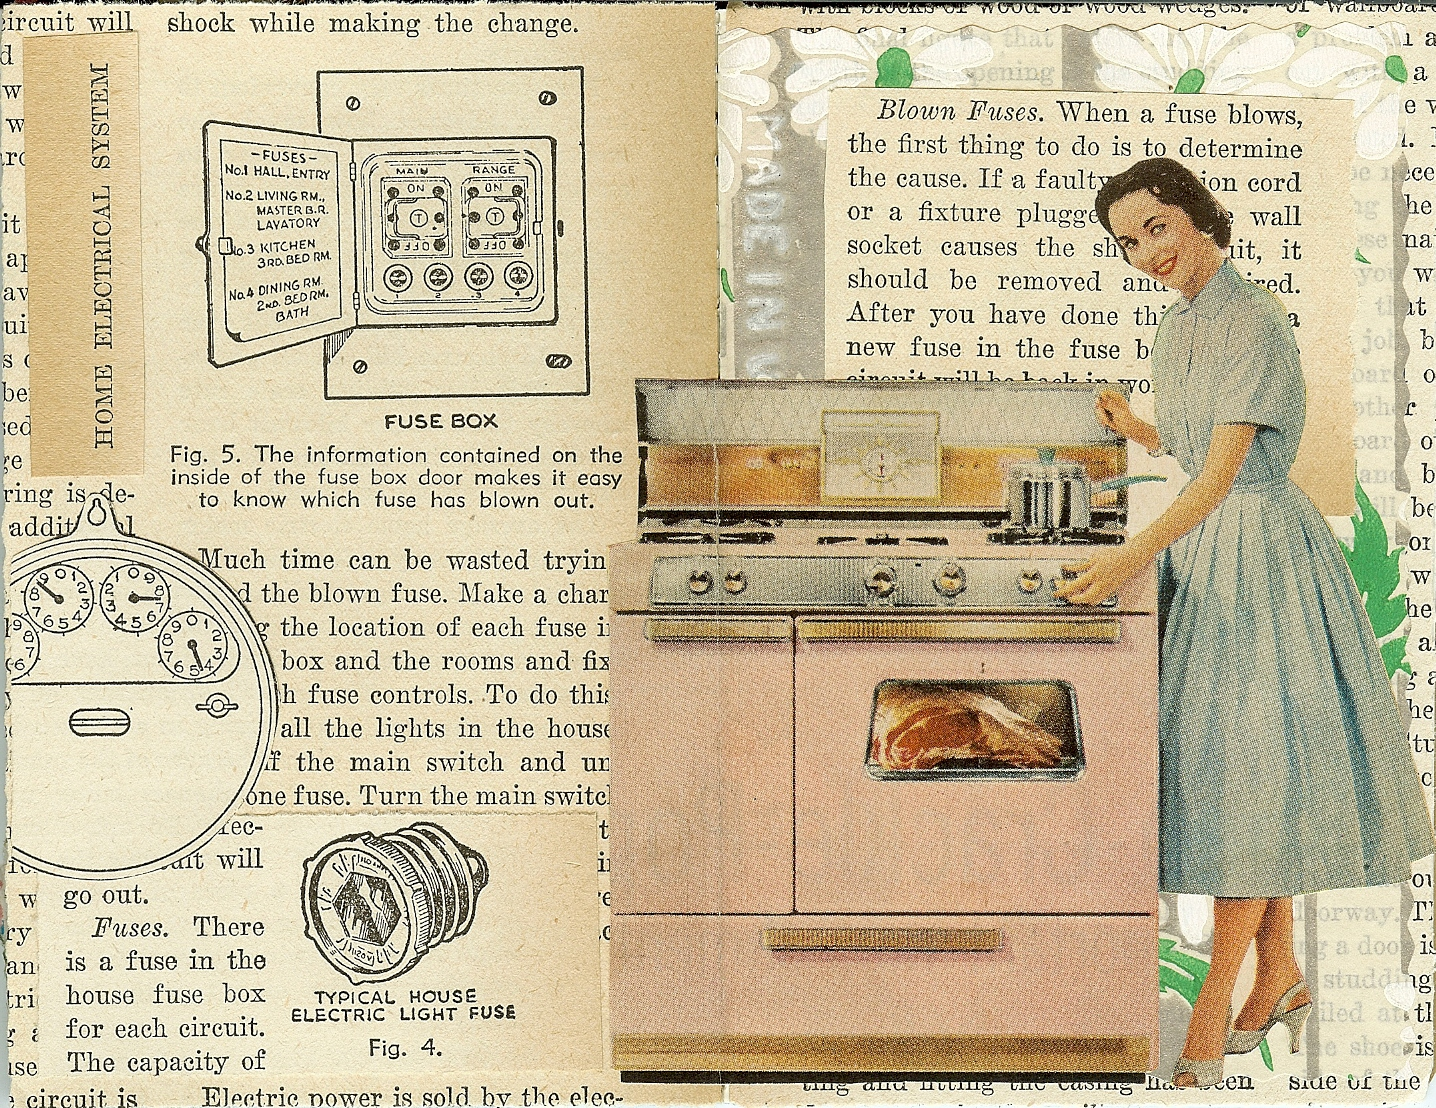 hight resolution of i can t help but think that honkin big roast in her oven would cause all kinds of blown fuses just to get the darn thing to cook lol enjoy jewels